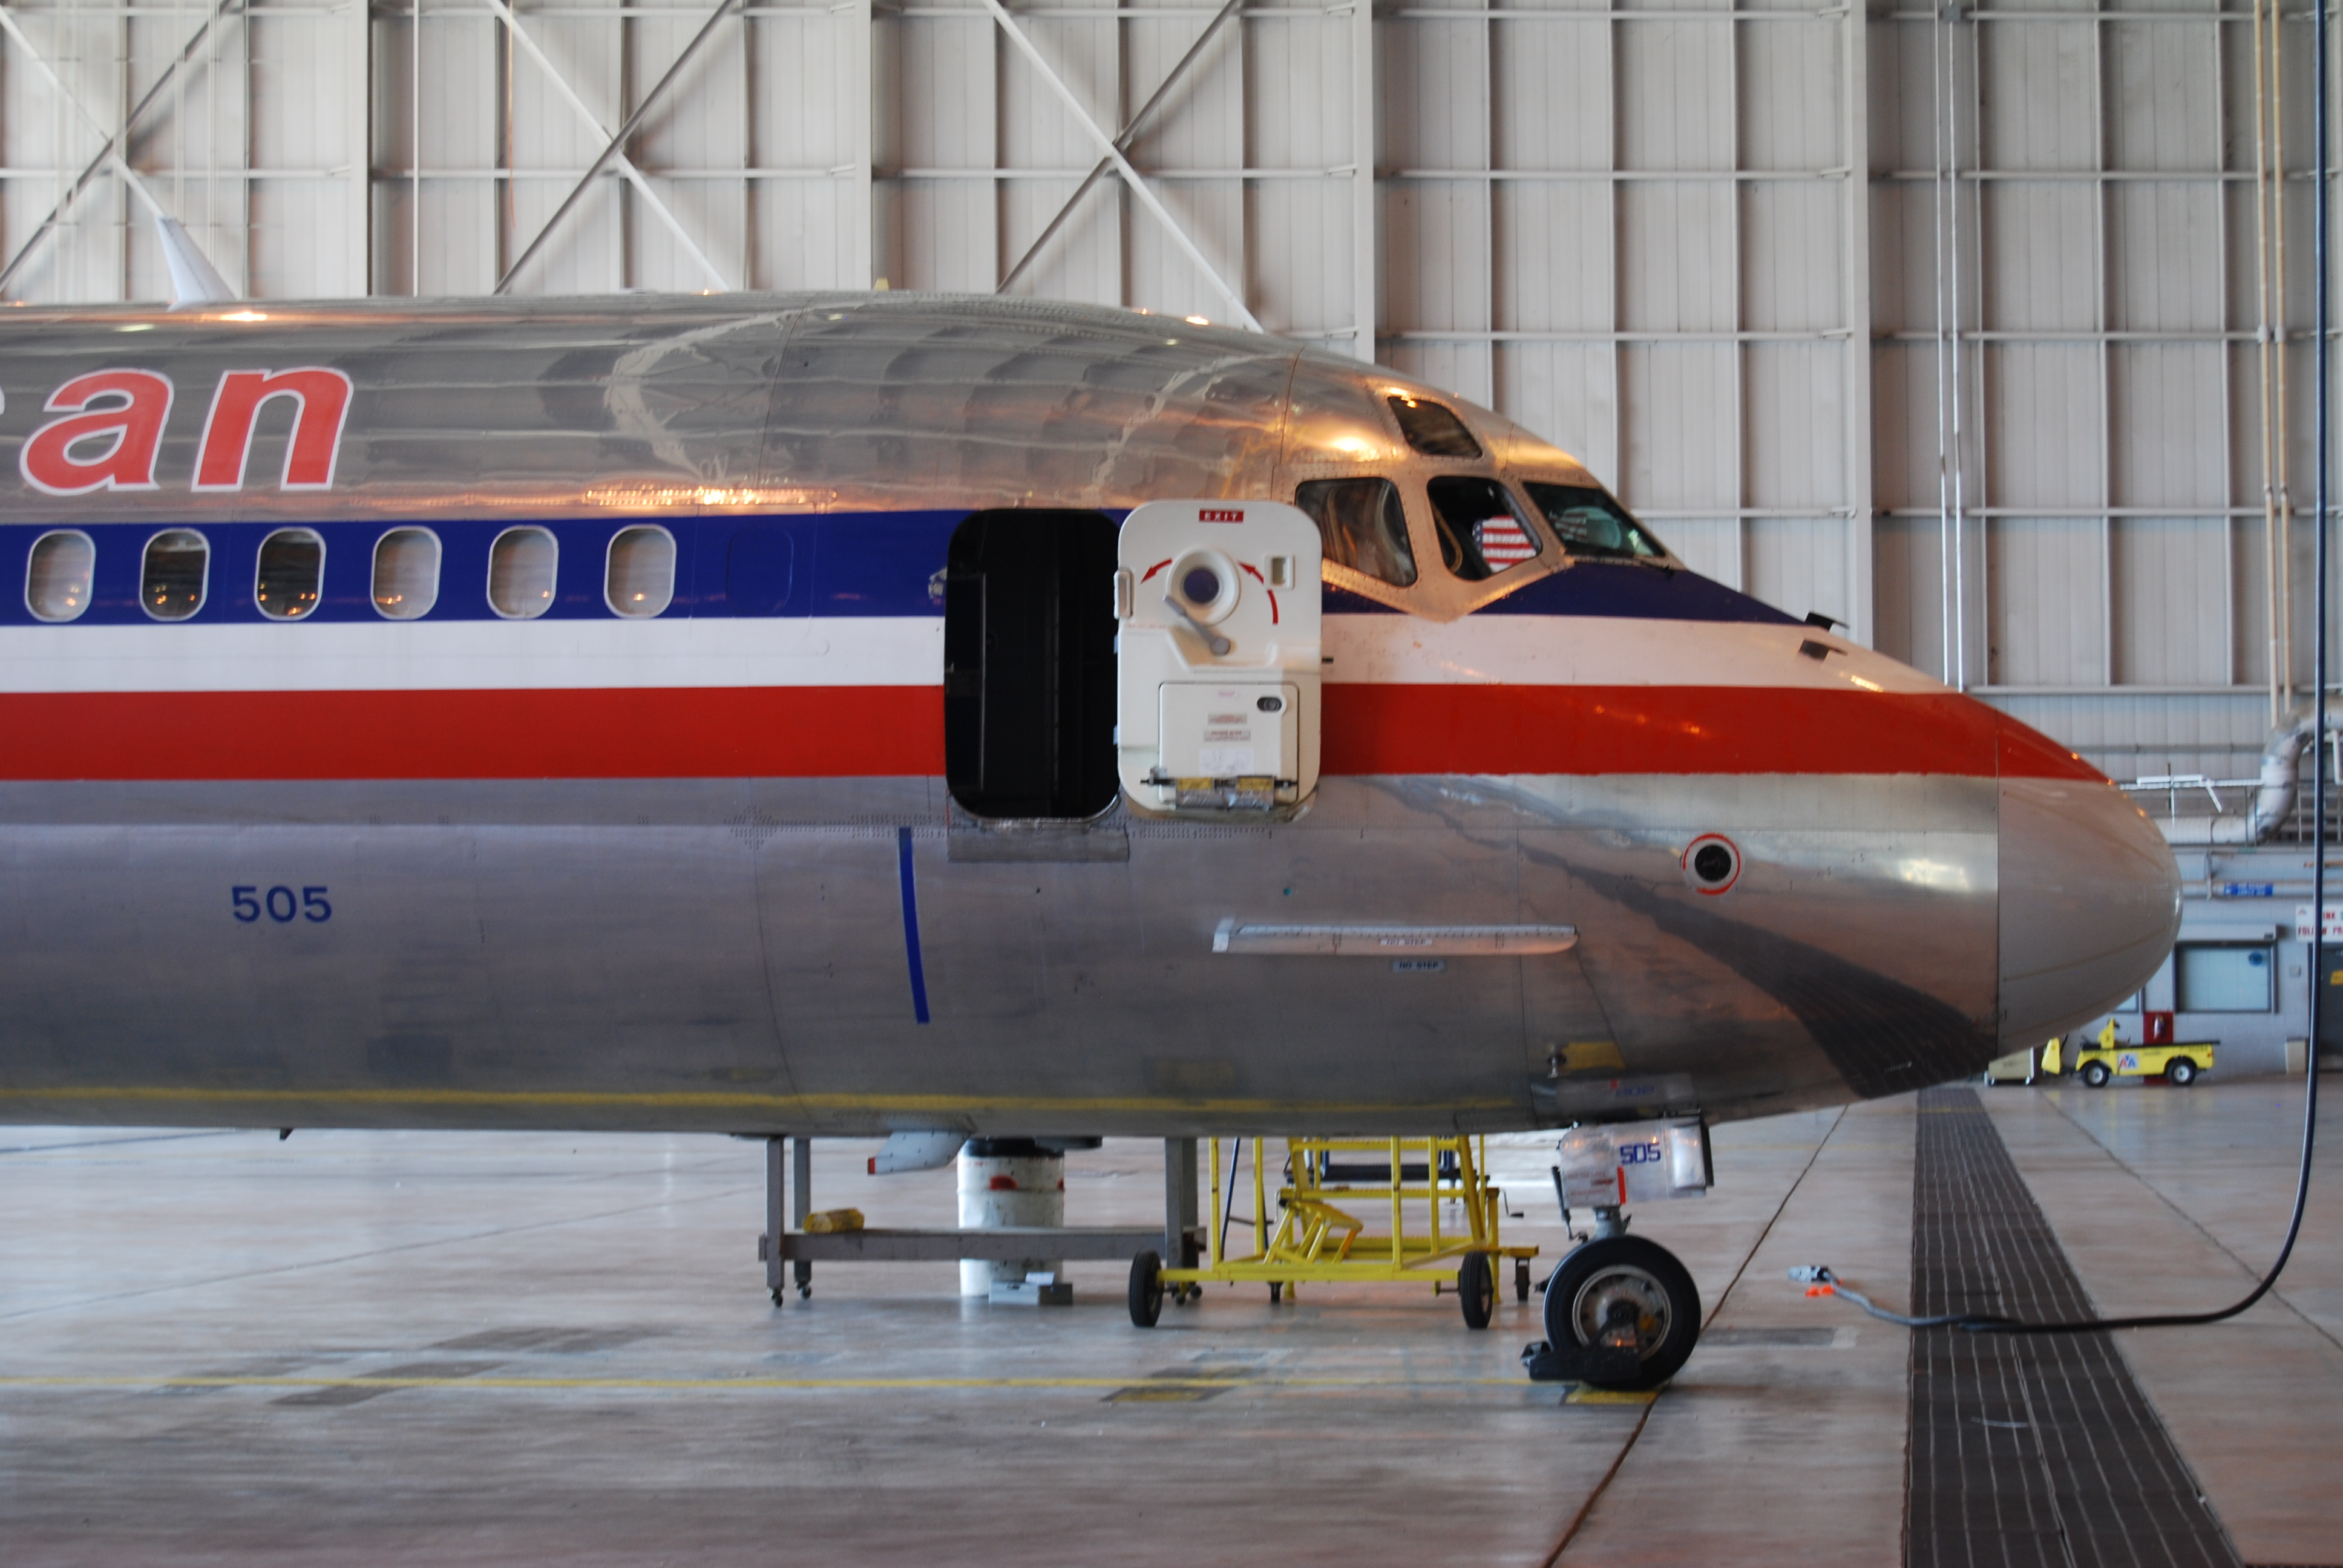 Mcdonnell Douglas Md 80 American Airlines Dfw Nose